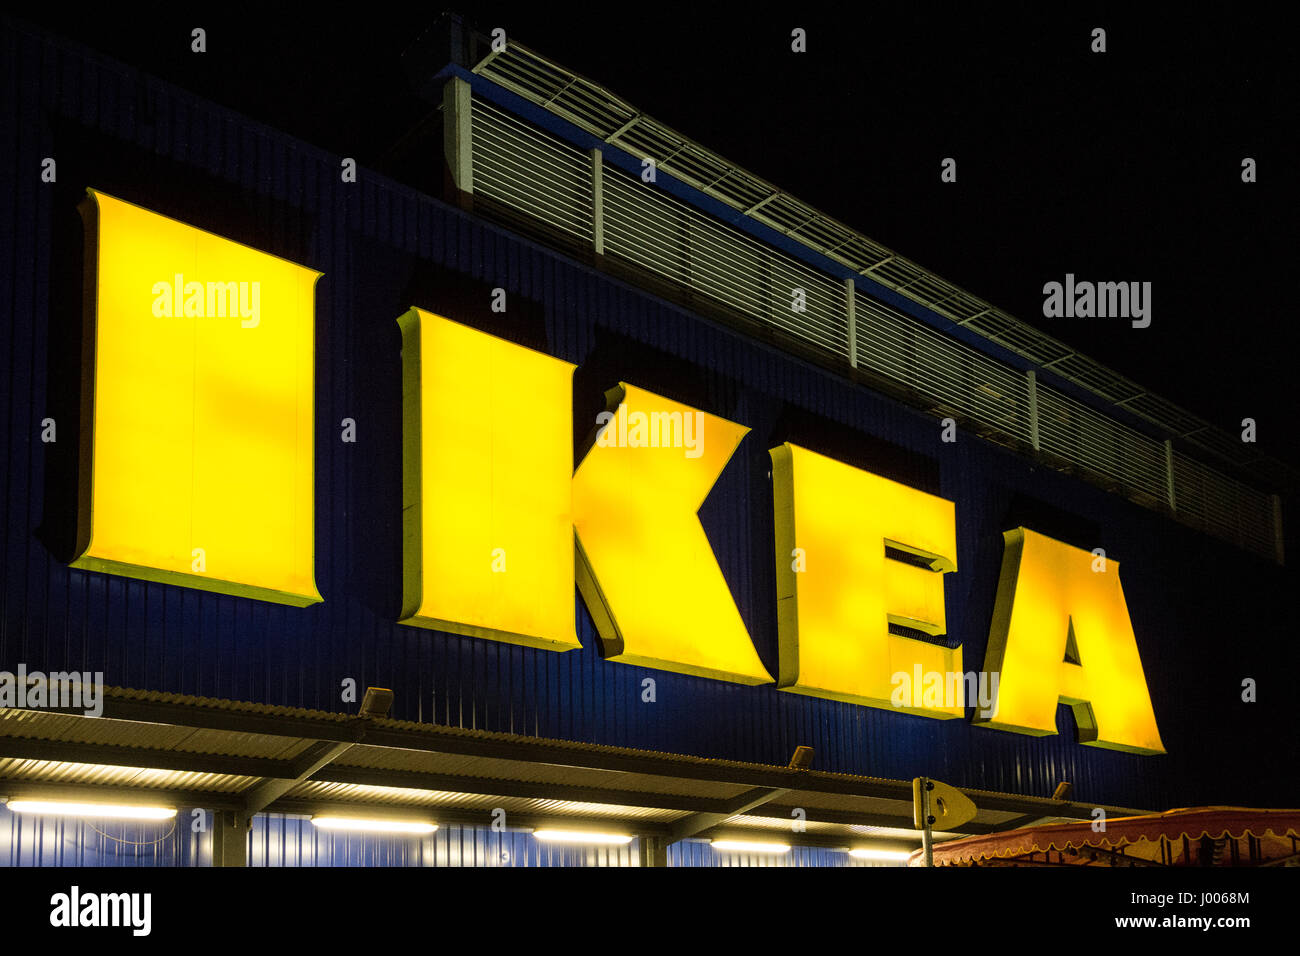 Large yellow, neon Ikea store sign outside Wembley superstore, London, UK - Stock Image